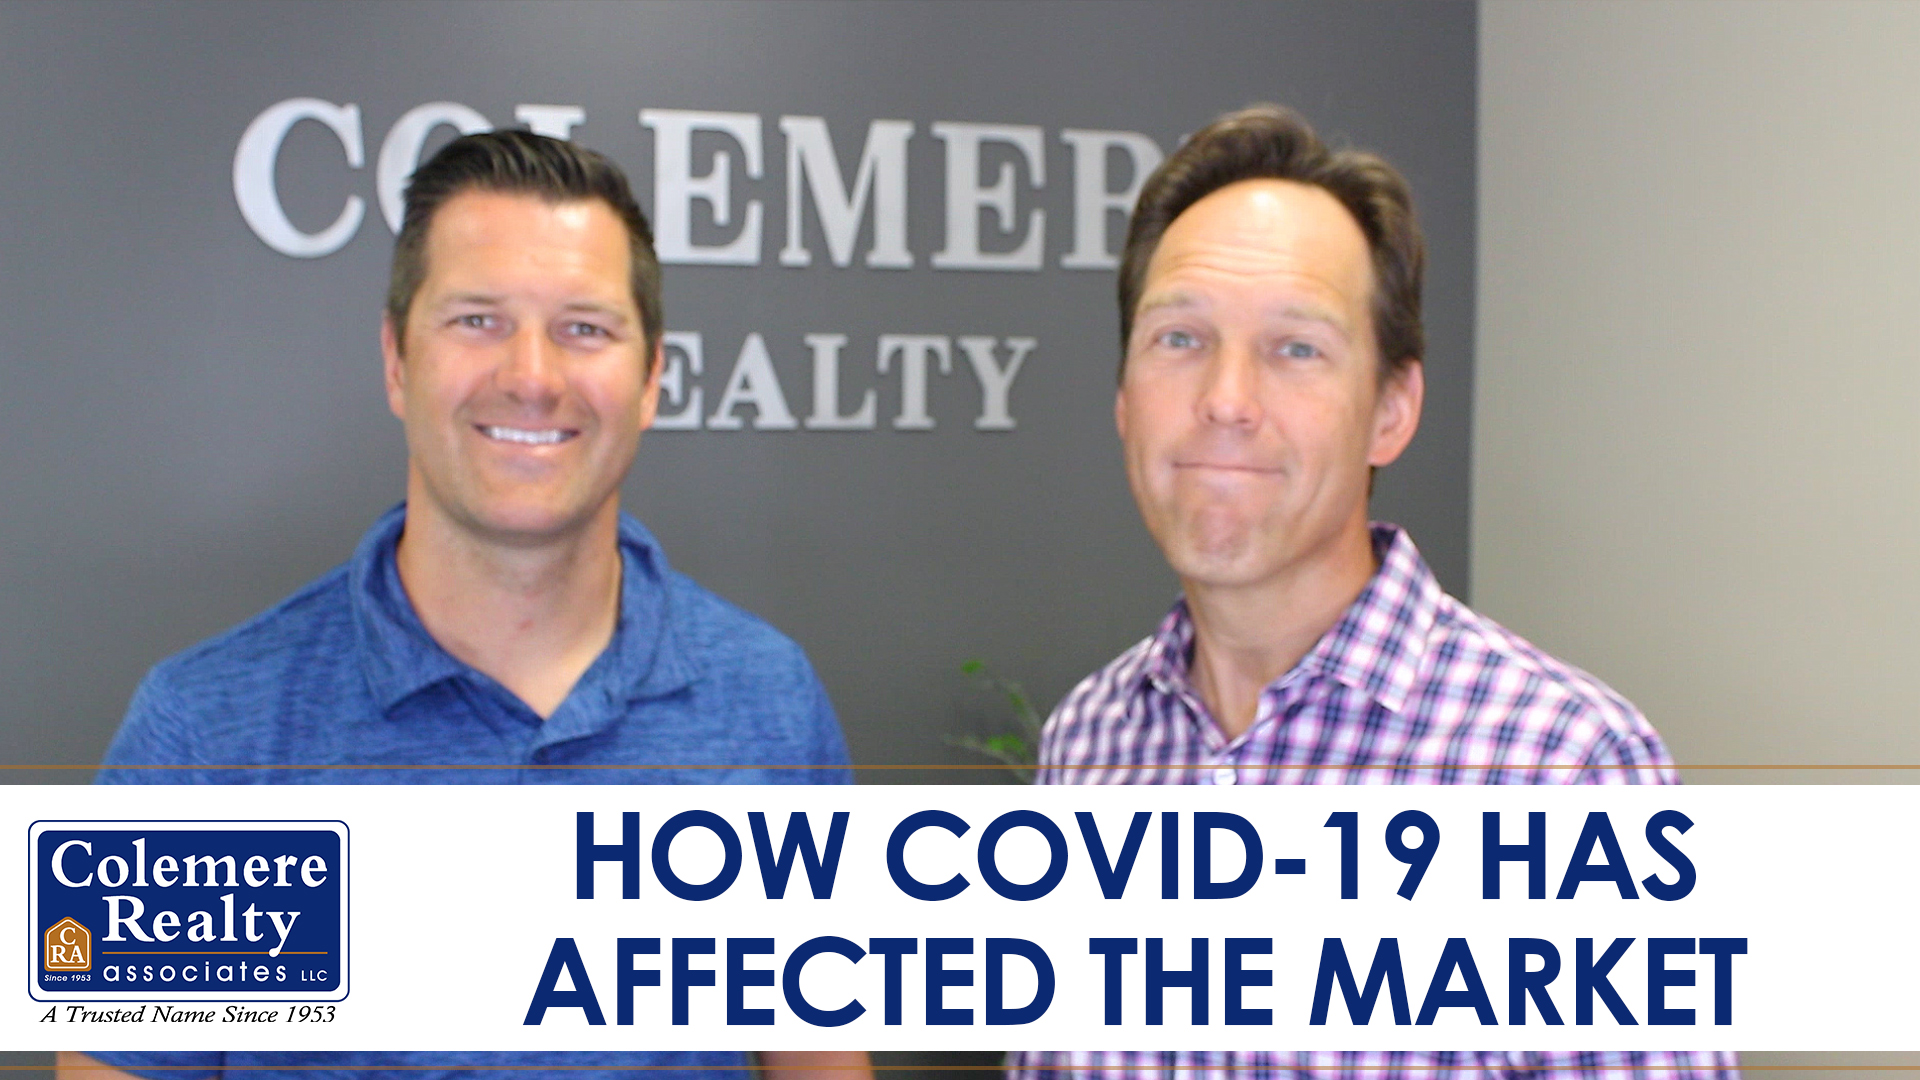 How Has COVID-19 Affected Our Market?